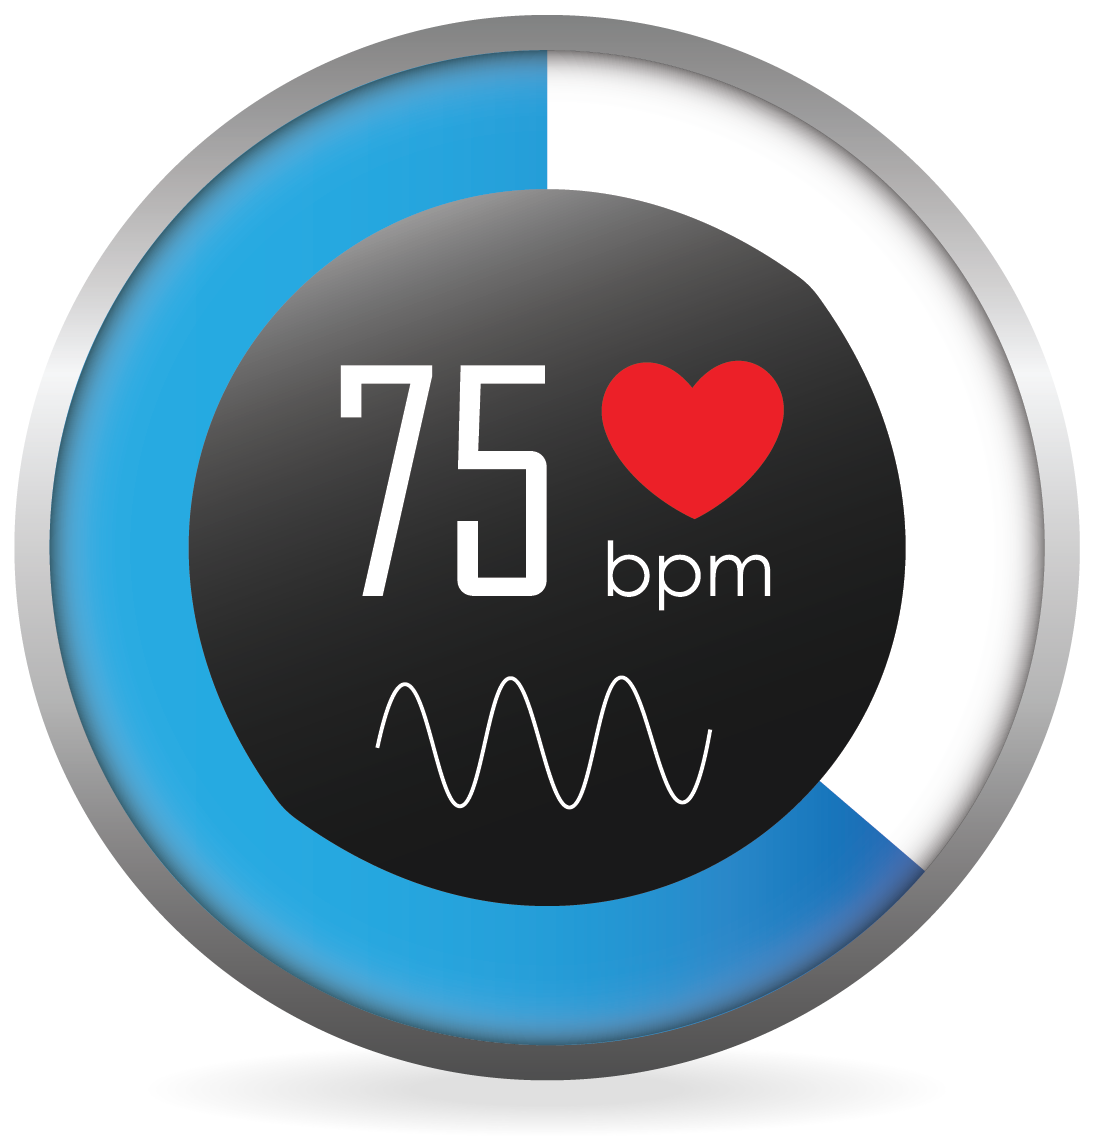 Heartbeat frequency = 75bpm